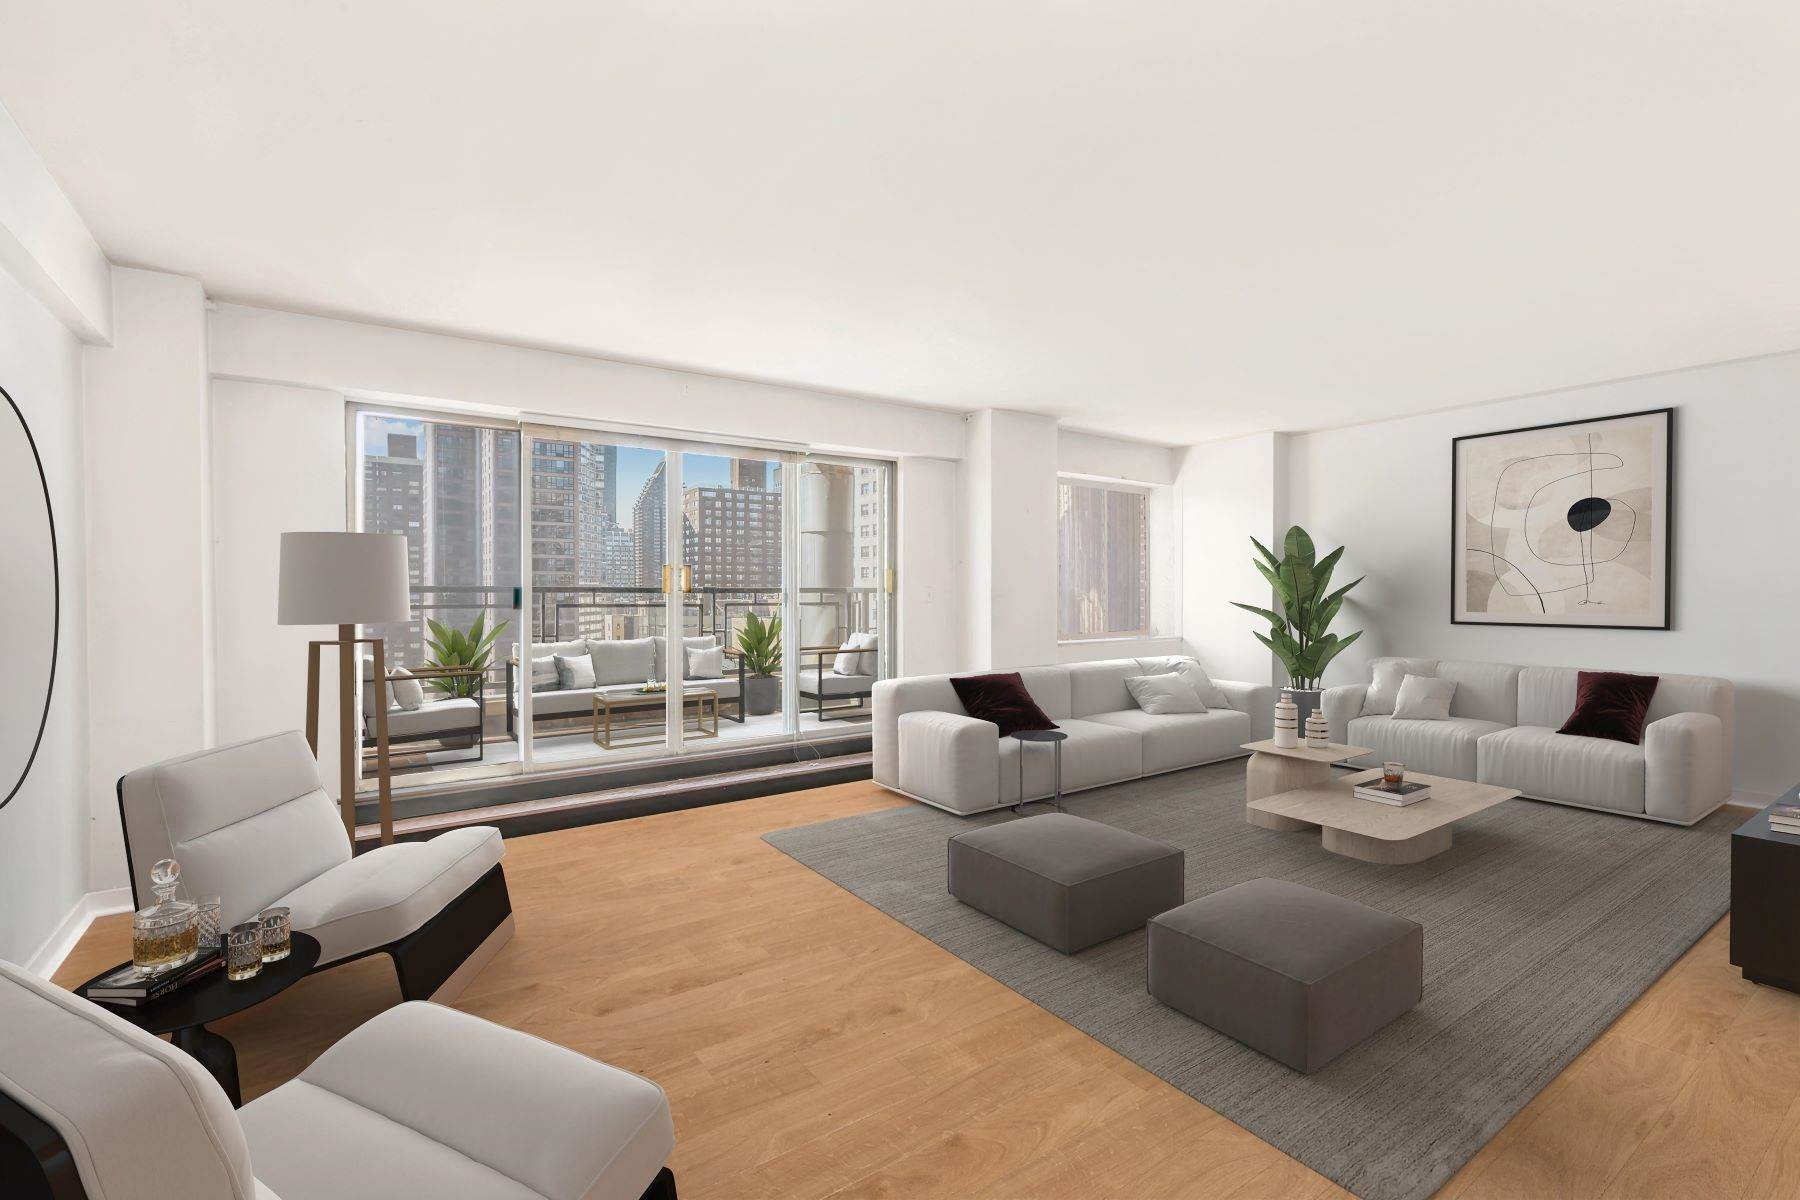 Co-op Properties for Sale at 440 East 57th Street, 20A New York, New York 10022 United States